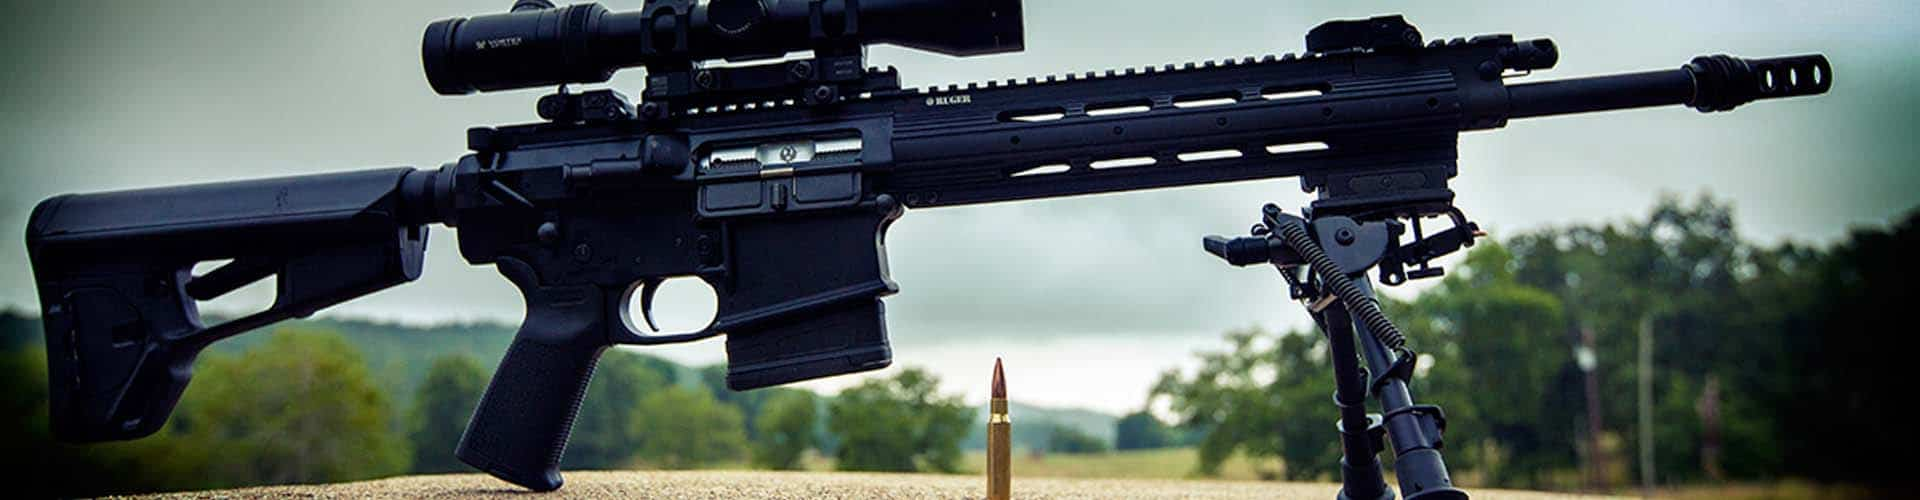 .308 vs .30-06 – Which Is Better?